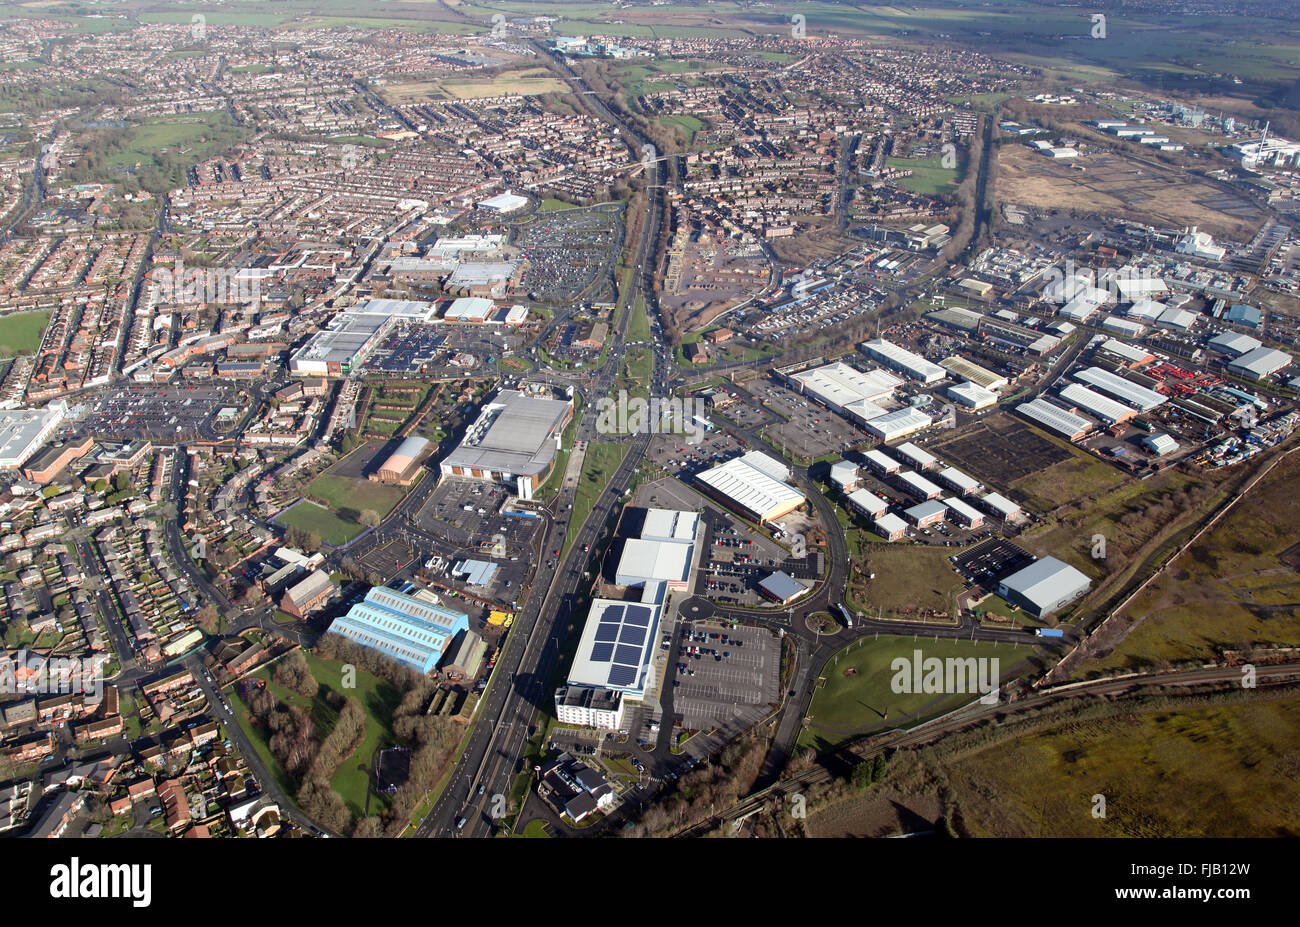 aerial view of the Cheshire town of Widnes, UK - Stock Image